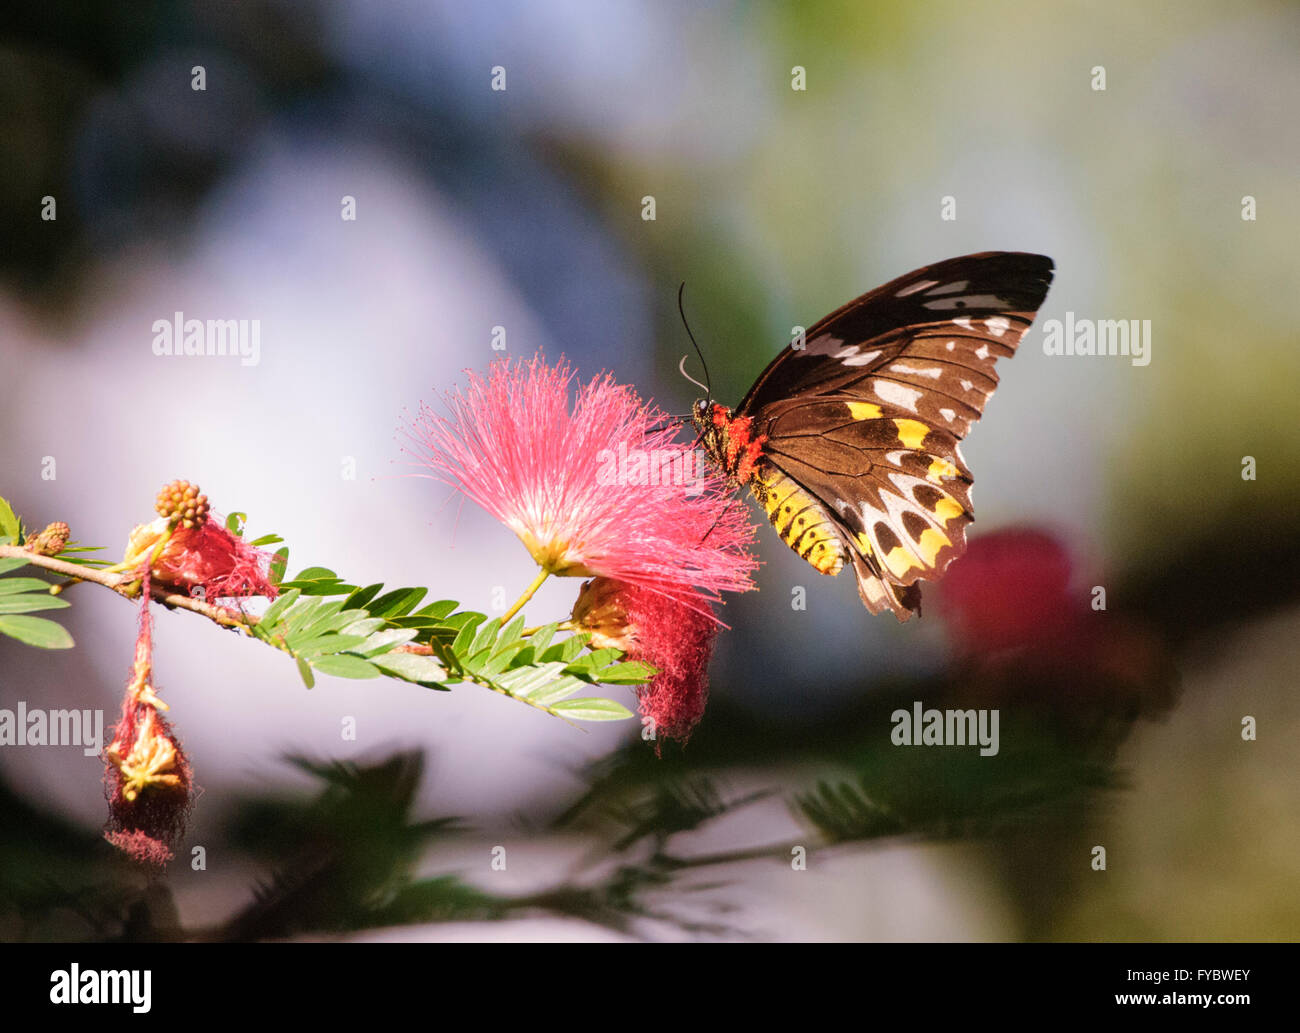 Butterfly pollinating a Myrtaceae flower, Northern Queensland, Australia - Stock Image